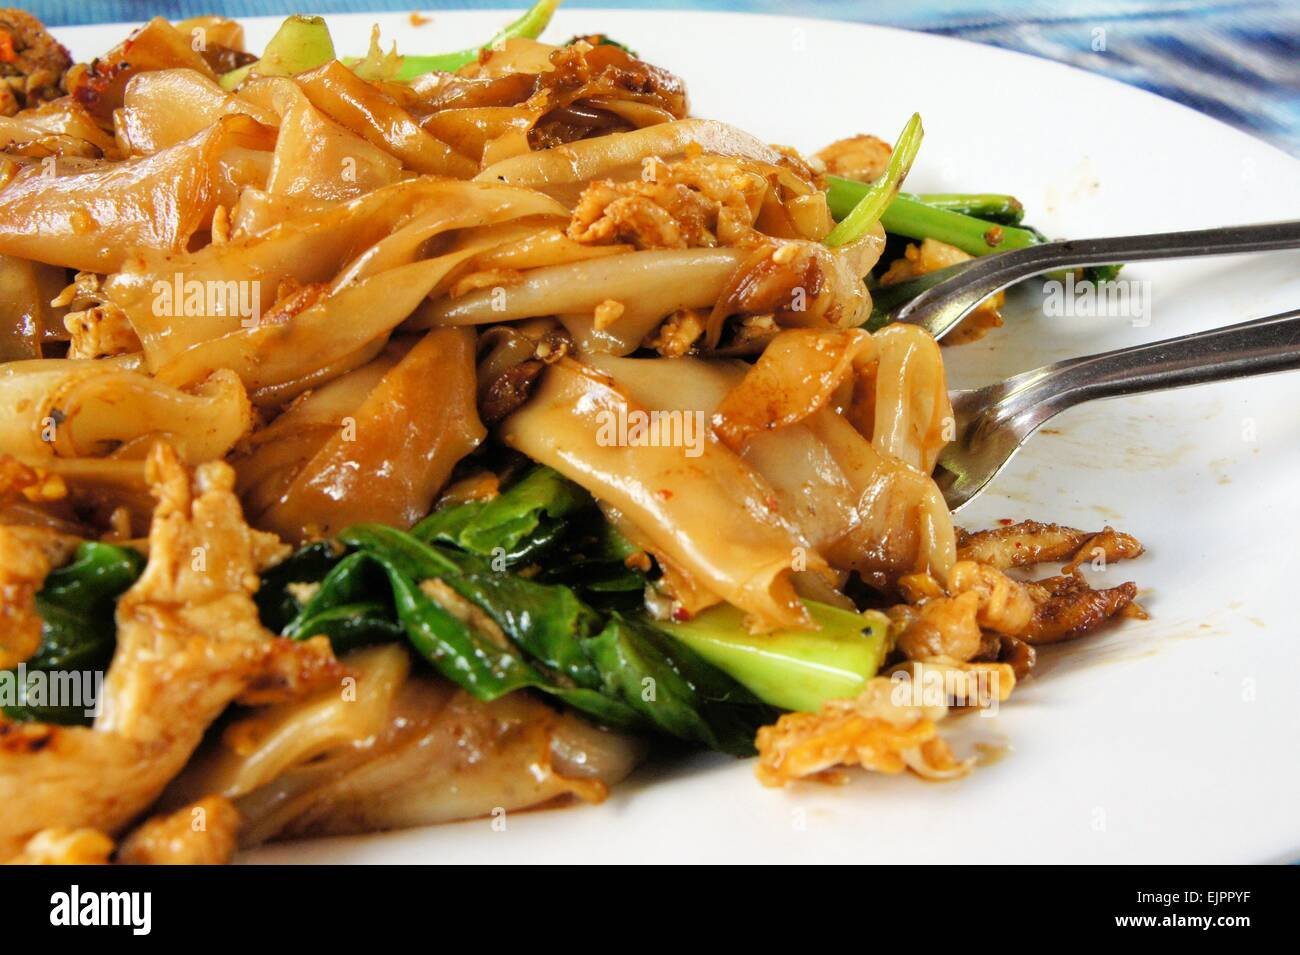 Pad see ew flat rice noodle stir fried with beef stock photo pad see ew flat rice noodle stir fried with beef ccuart Choice Image